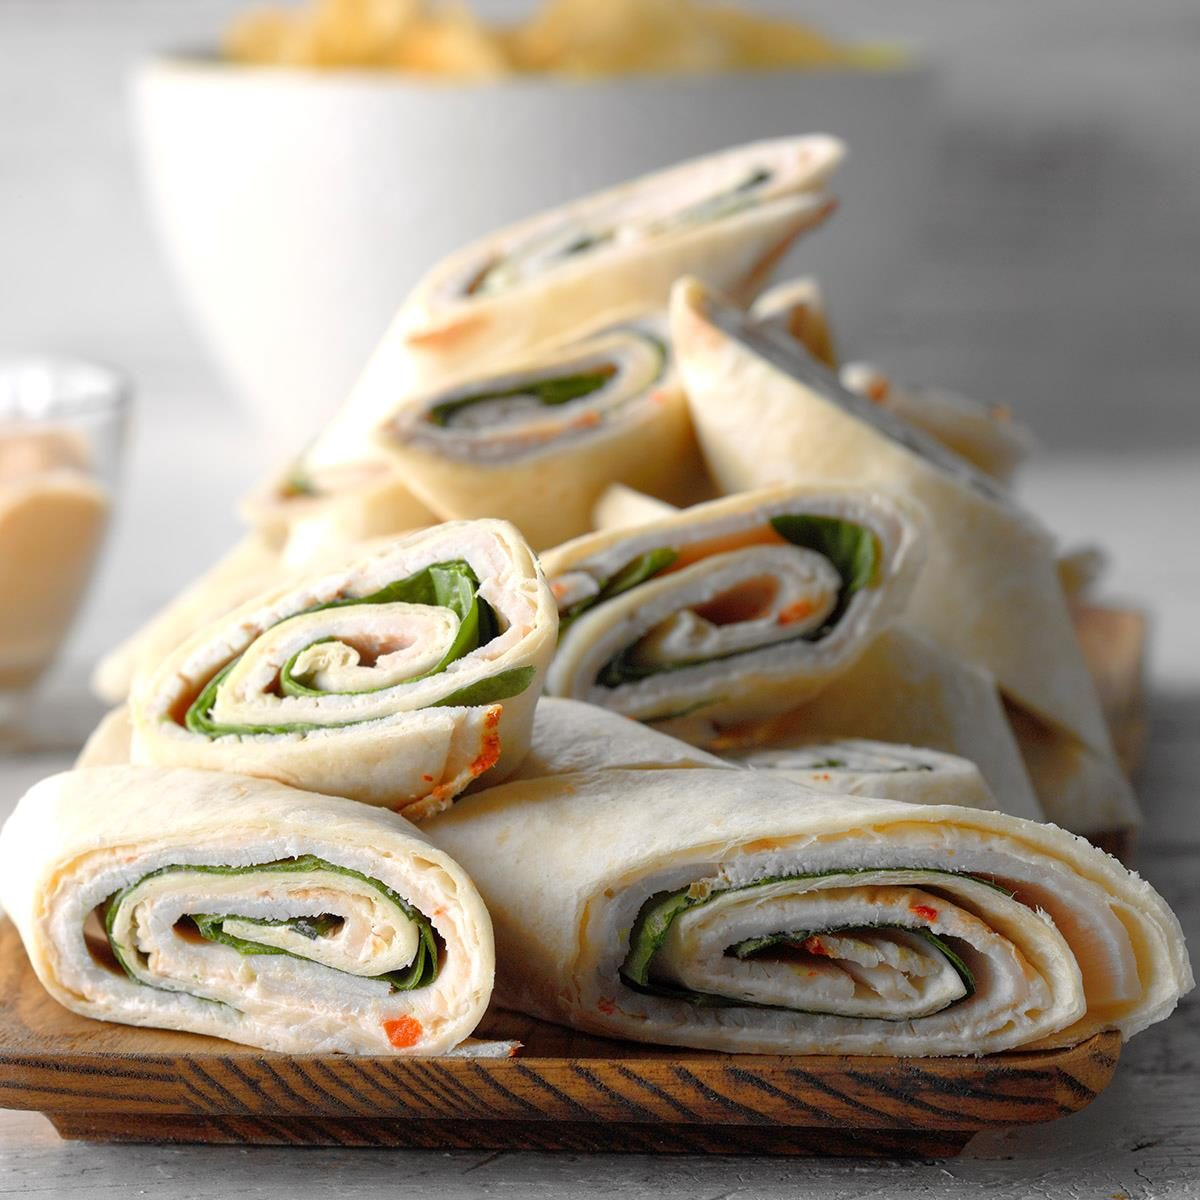 Day 2 Lunch: Spinach and Turkey Pinwheels